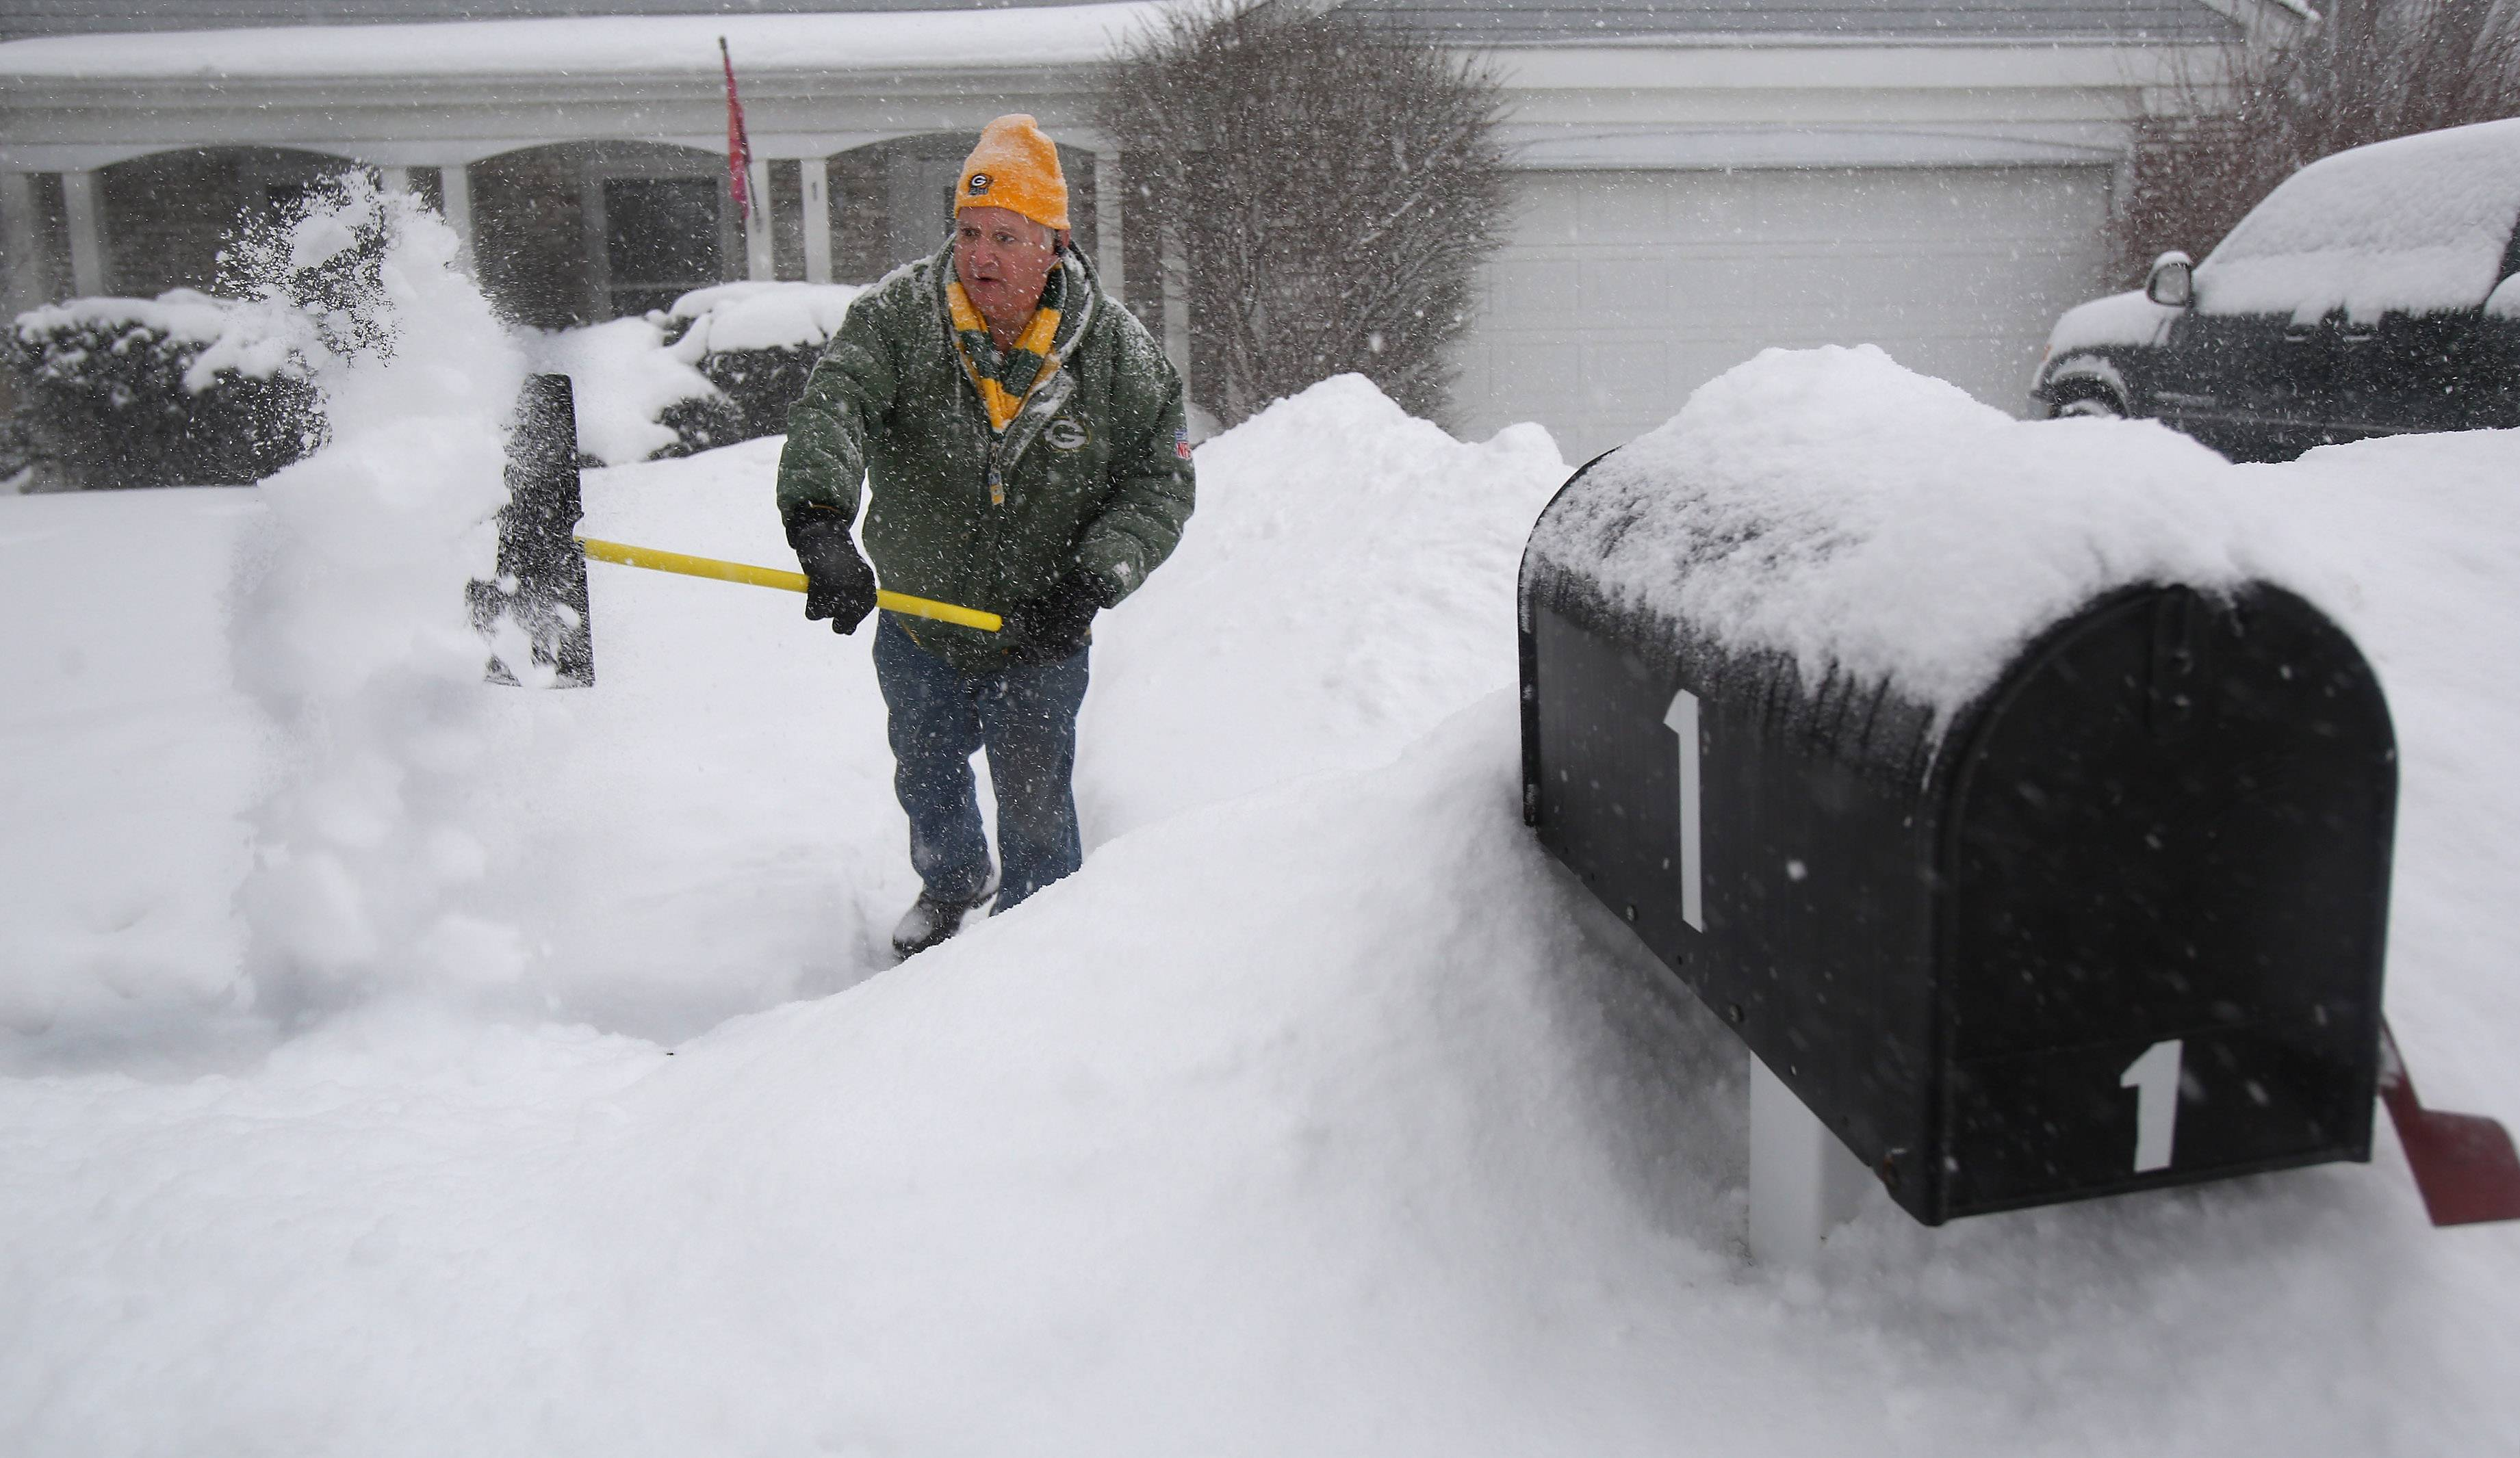 Heavy snow was a nuisance for people like Vernon Hills resident Tom Herrmann, but it provided insulation for plants.